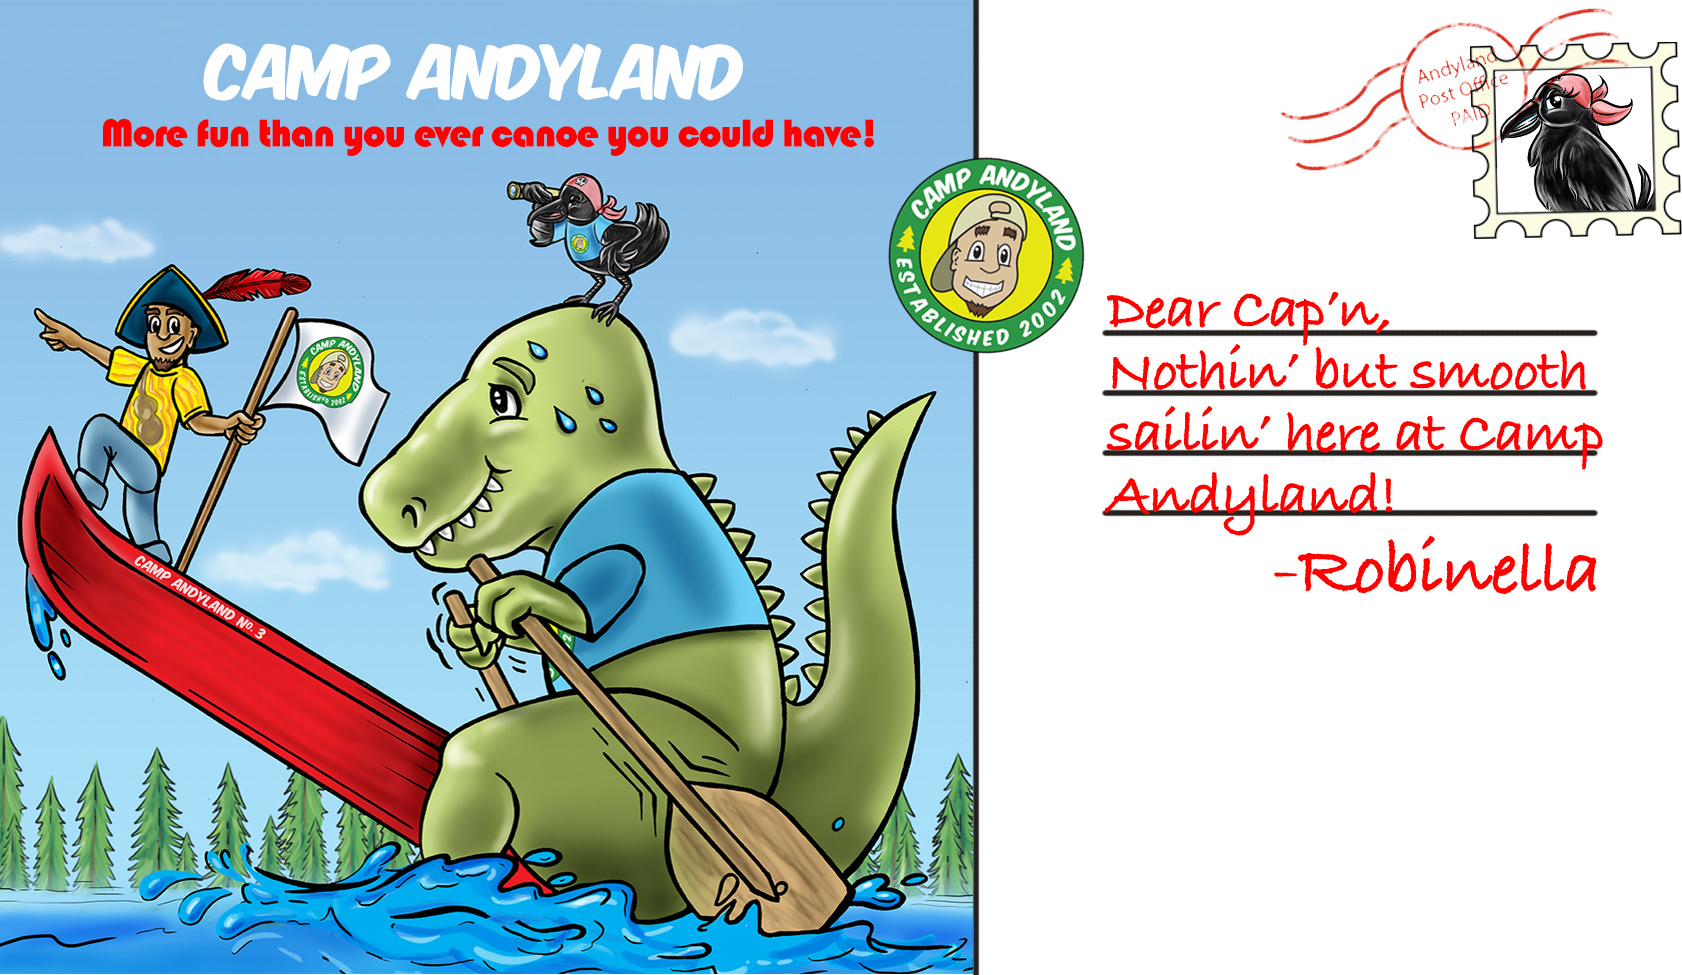 Canoe camp song clipart clip art freeuse download Camp Andyland -by Andy Z! 16 sing-along favorites! clip art freeuse download